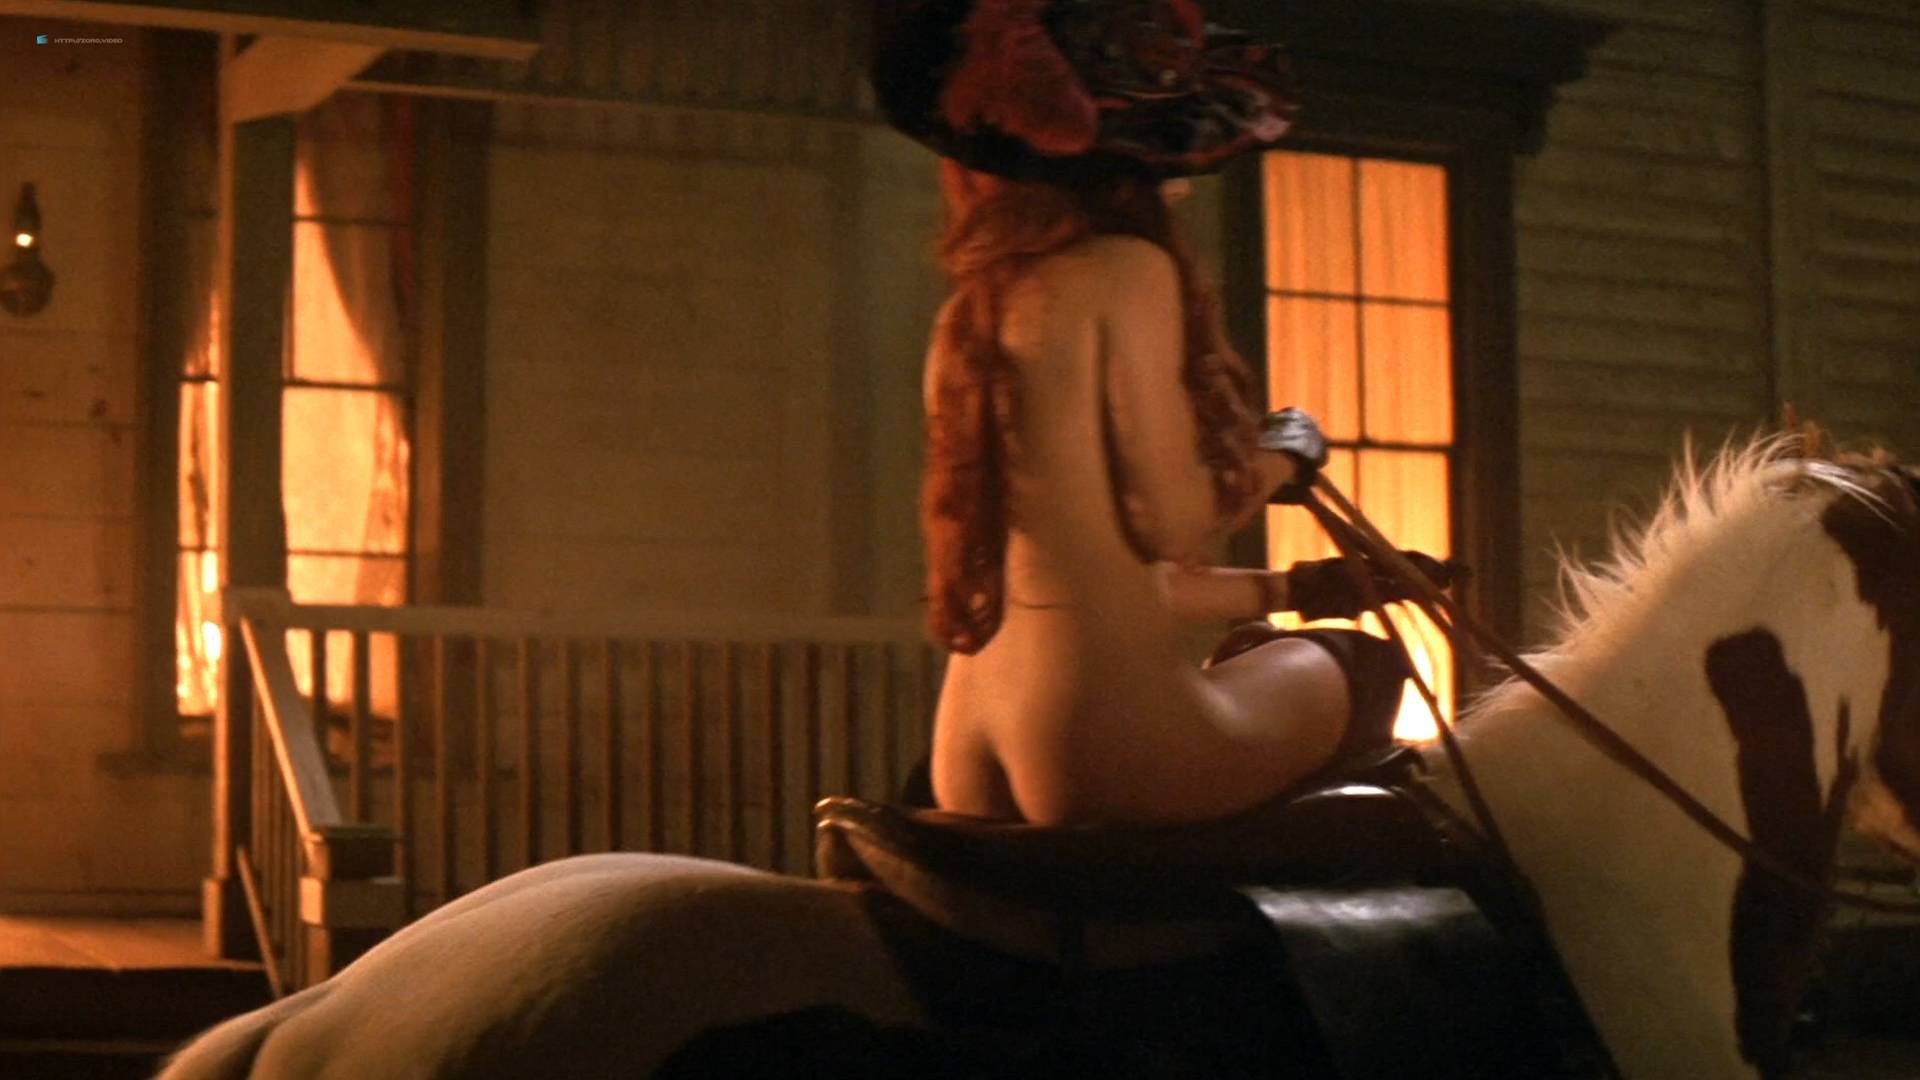 The young naked butt pictures watt stunning